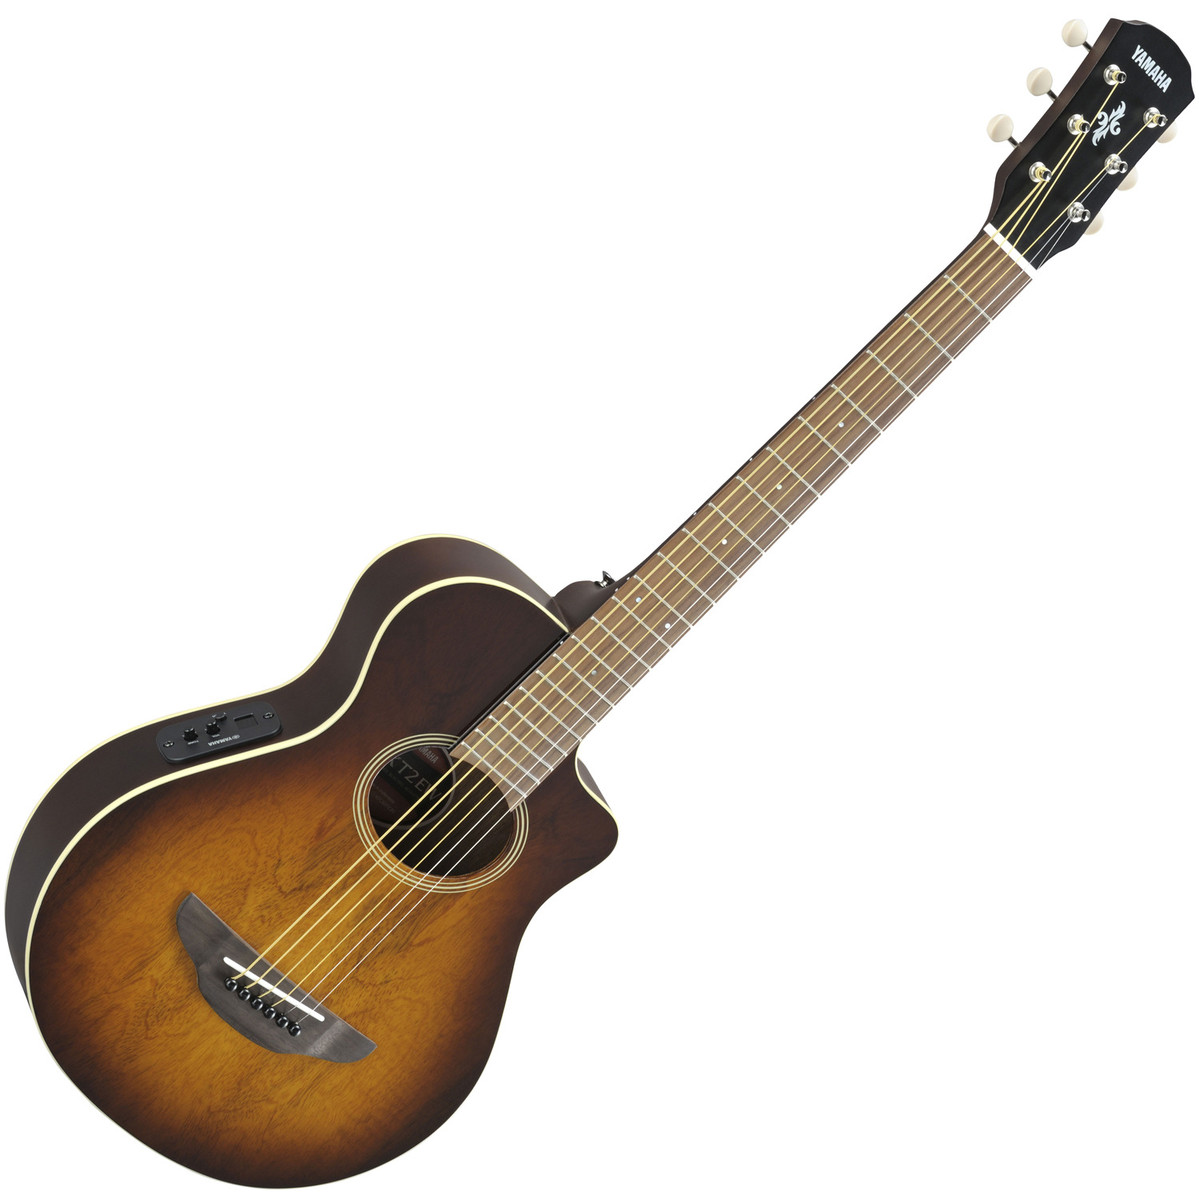 Disc yamaha apxt2ew 3 4 electro acoustic guitar tobacco for Yamaha acoustic bass guitar